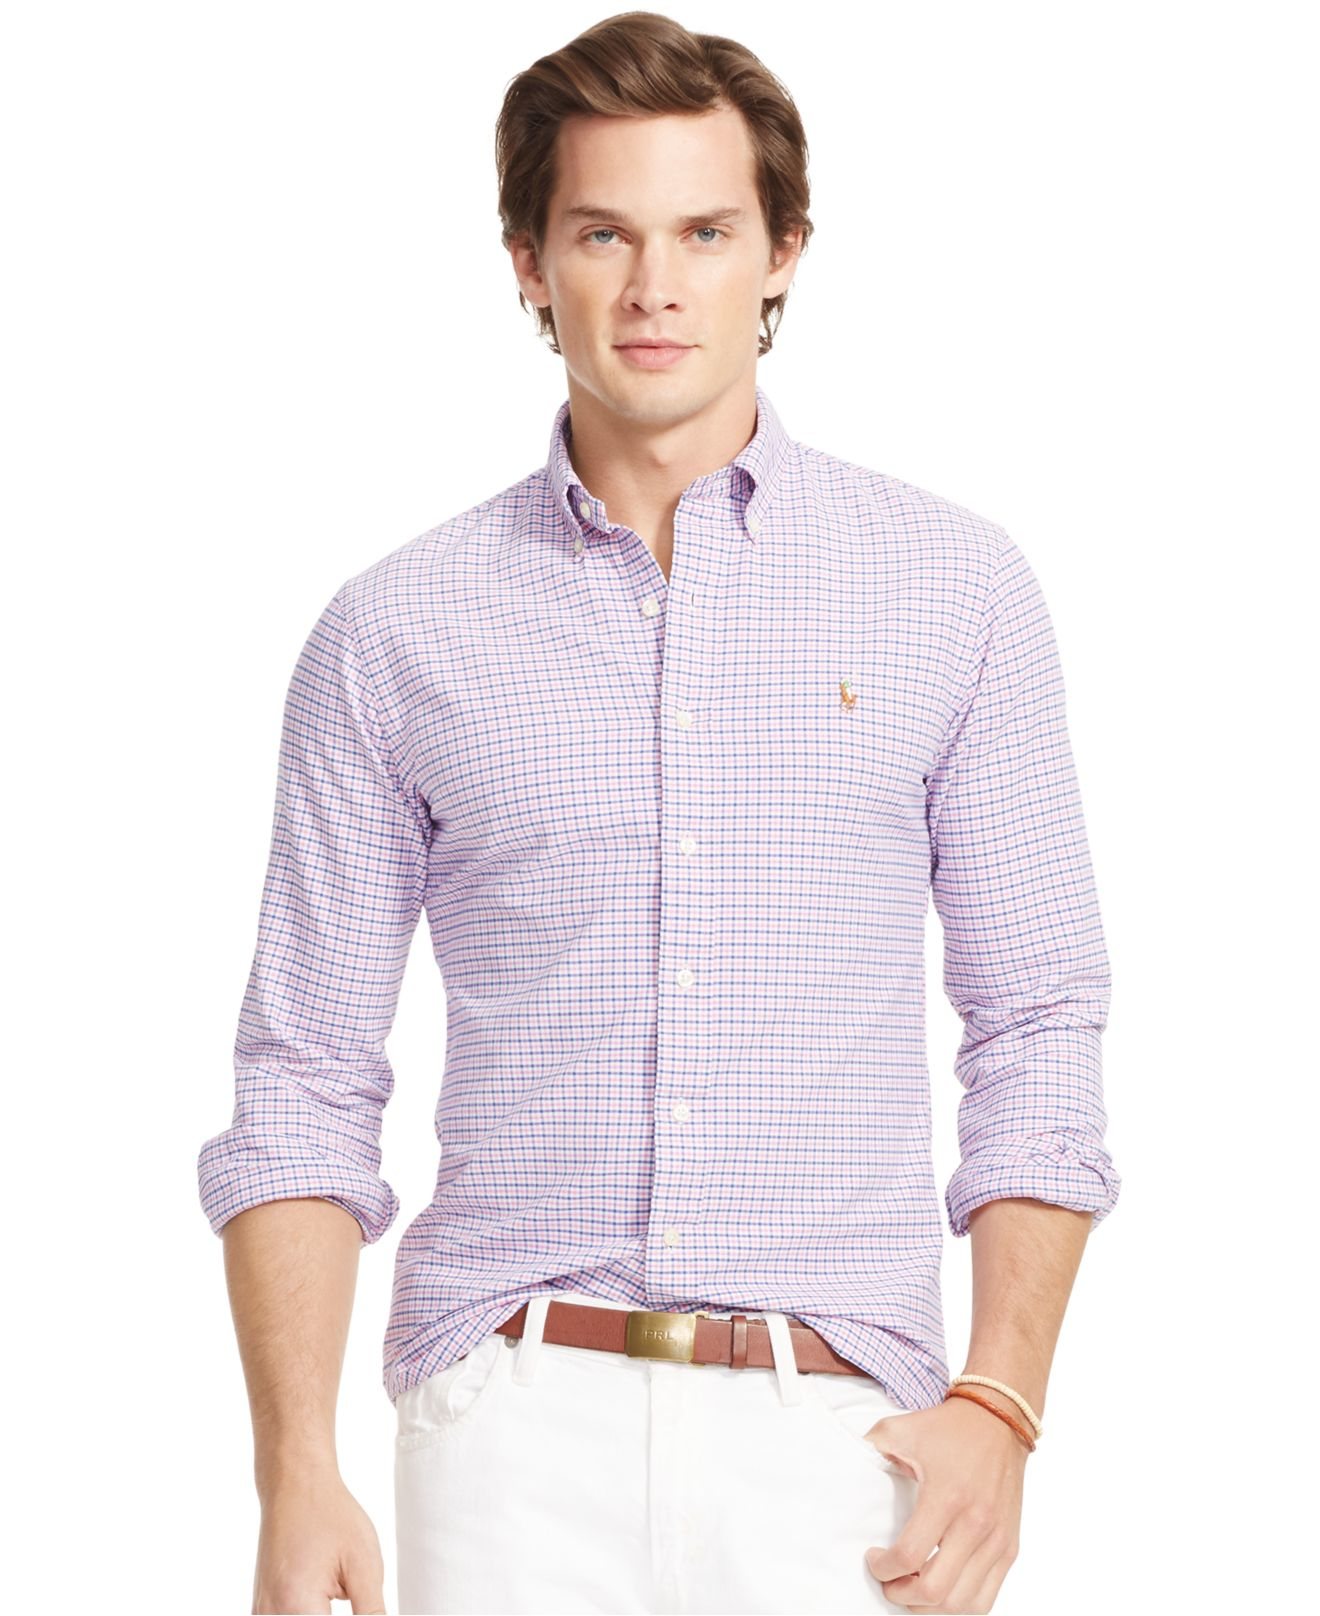 949ae7a2d68b7 Lyst - Polo Ralph Lauren Men s Men s Long Sleeve Multi-gingham ...